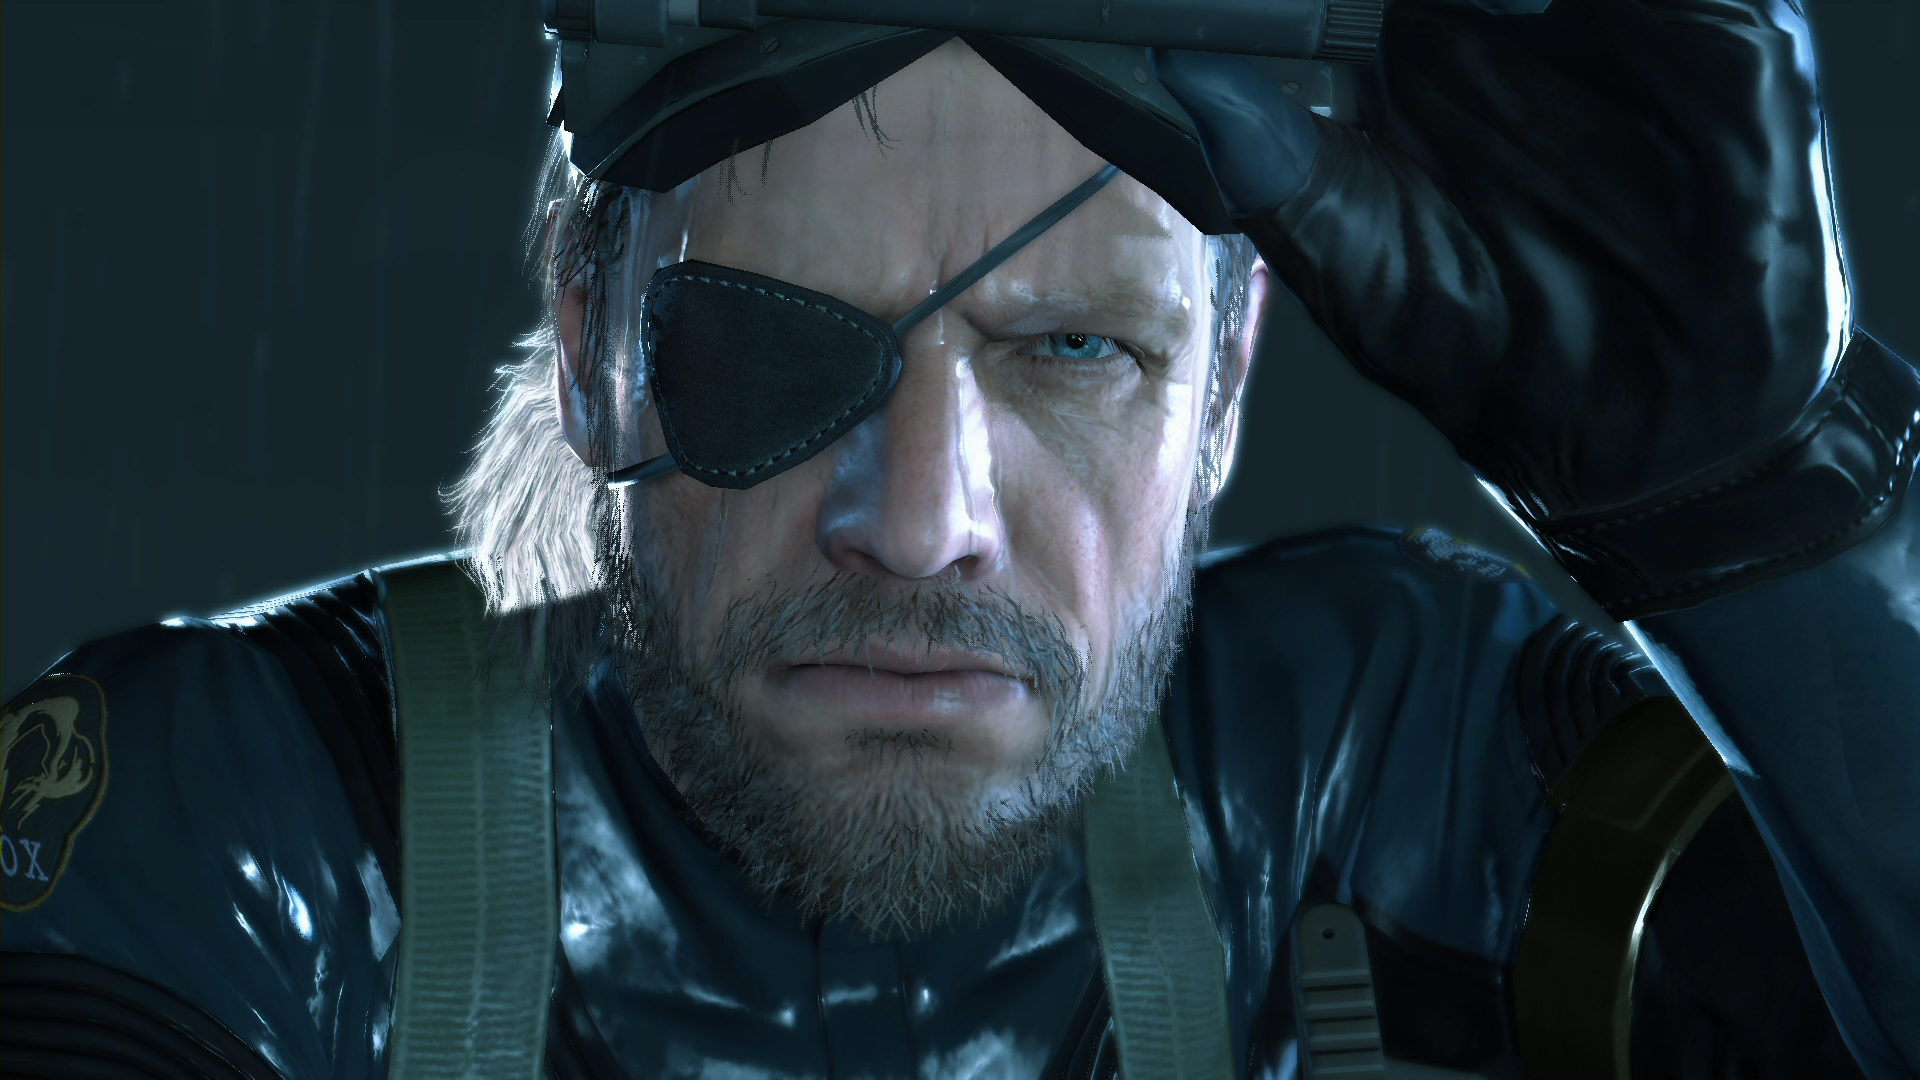 Metal Gear Solid V Definitive Edition For Consoles Leaks Online 7d6a18d658f093db20632613b5563942